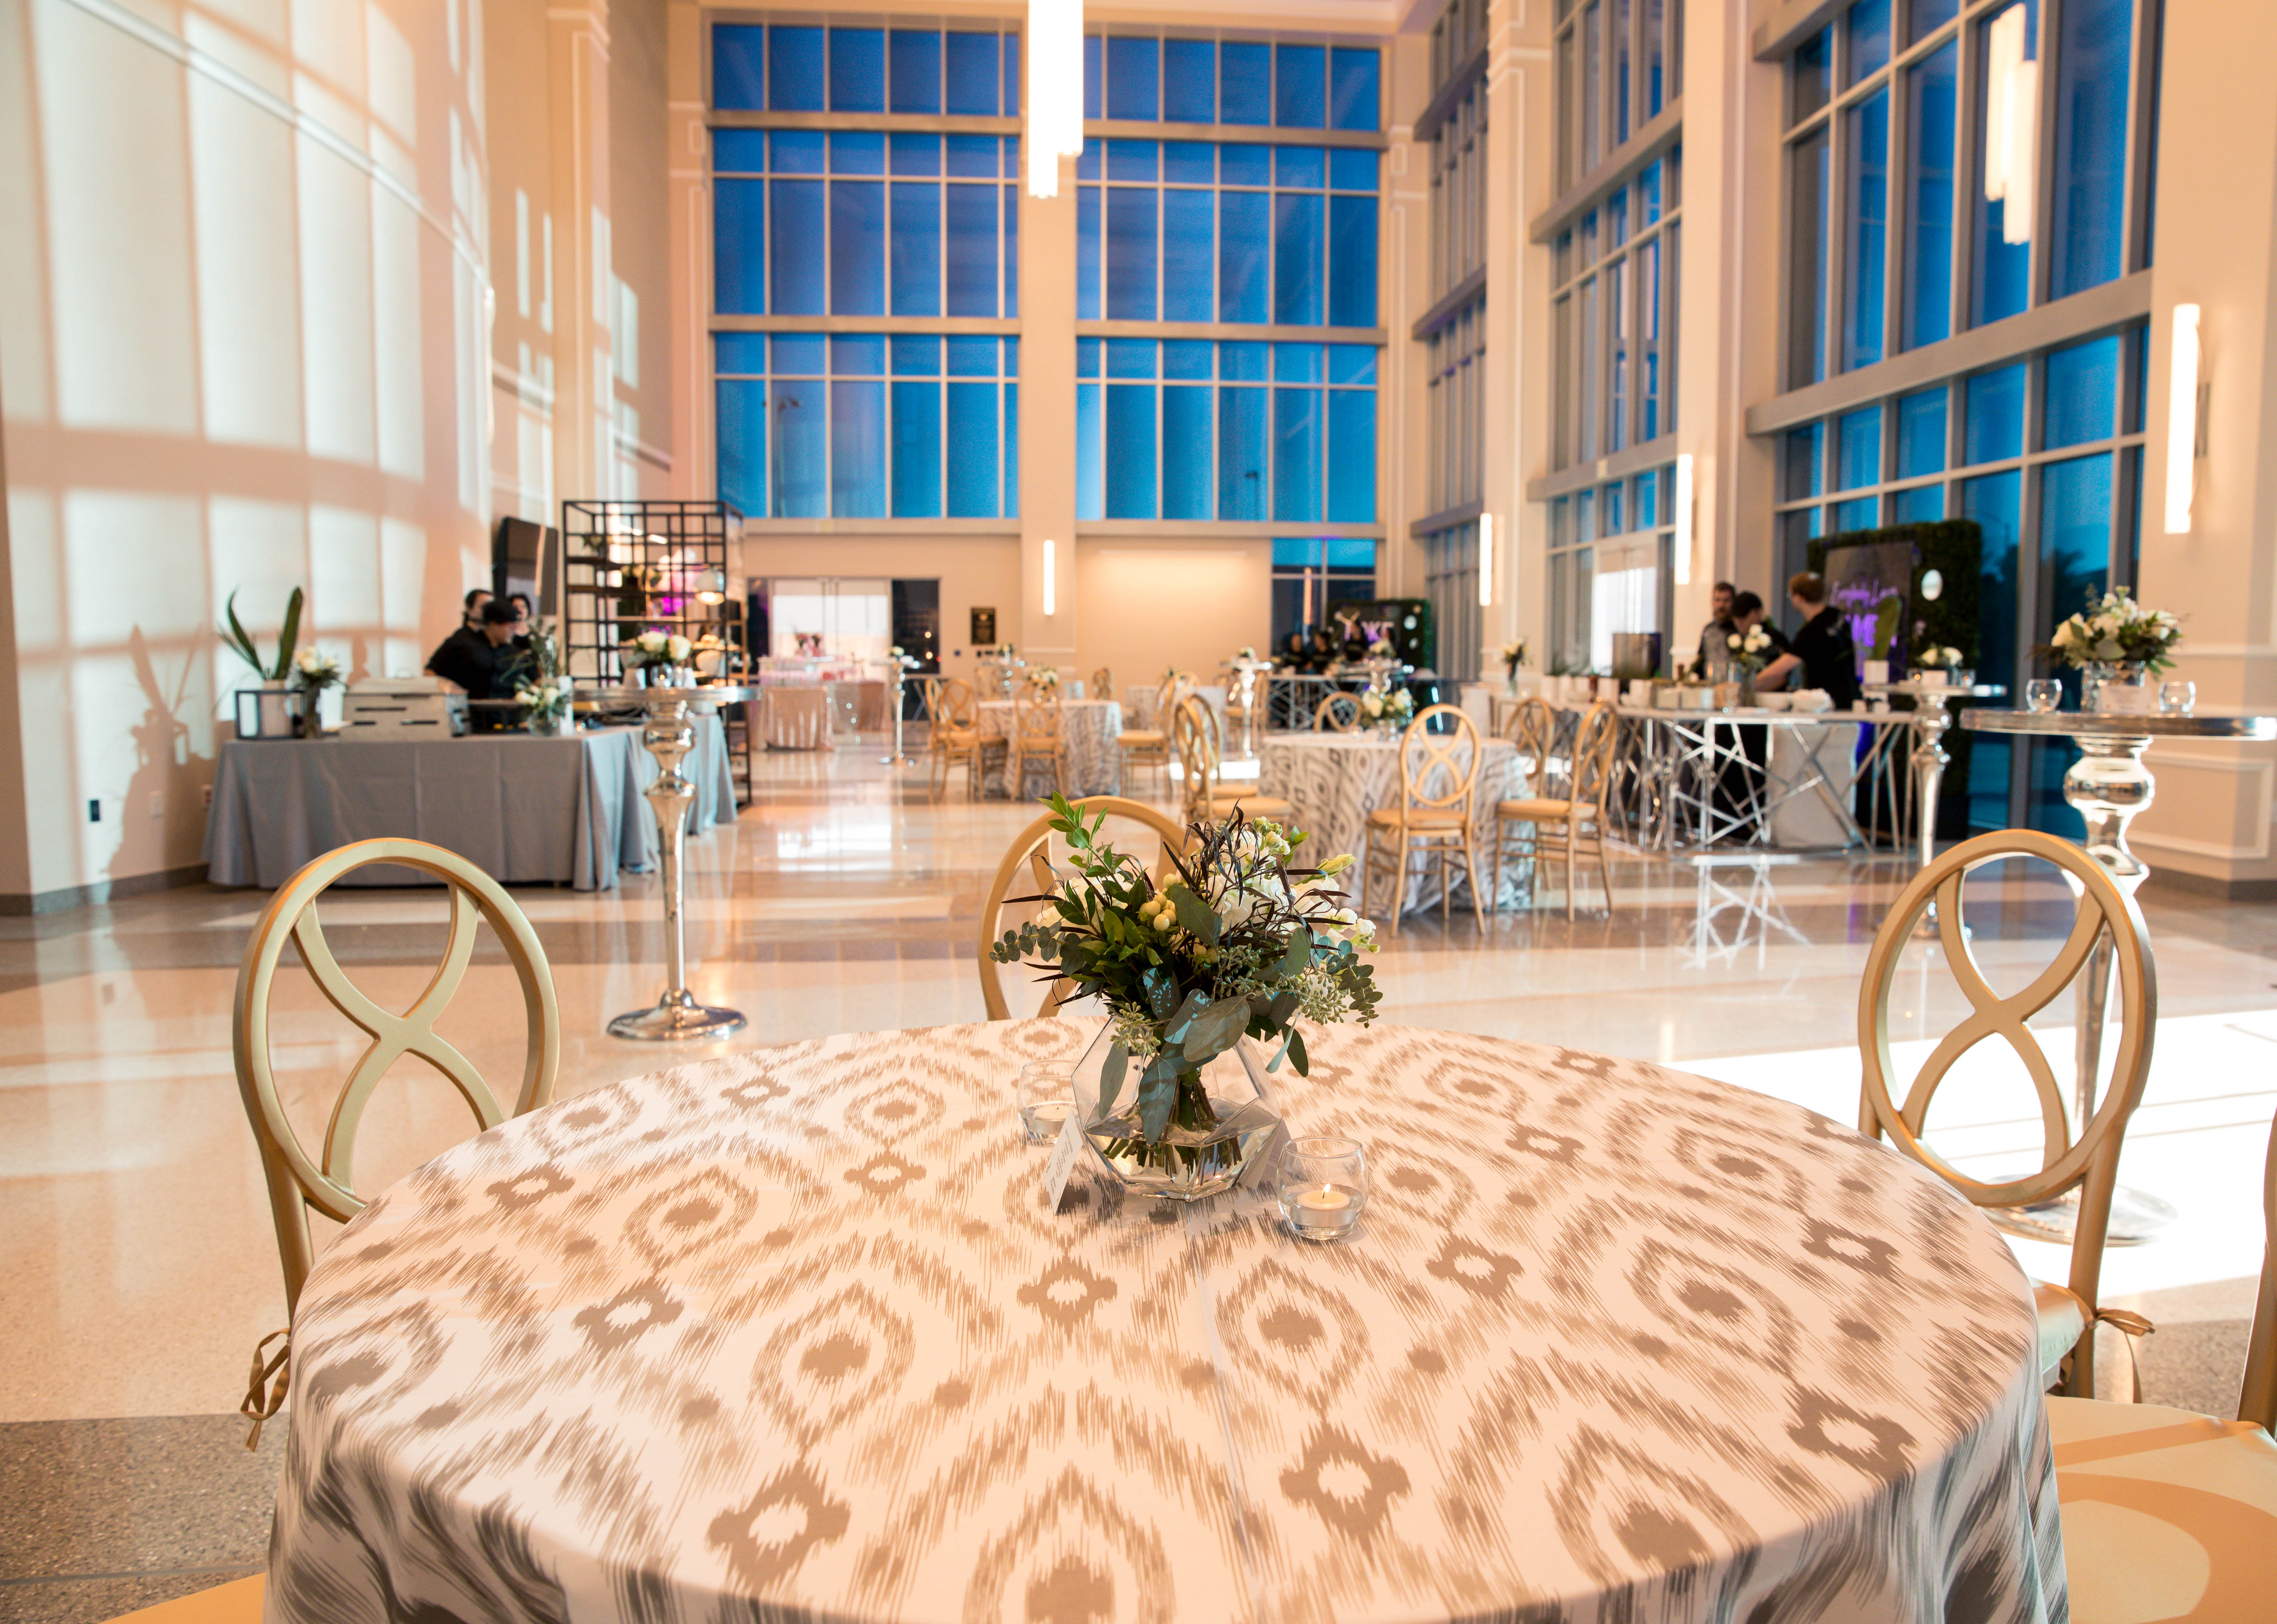 large white room with tall windows tan ikat pattern table cloth and ornate circle chairs aribella photography event pictures